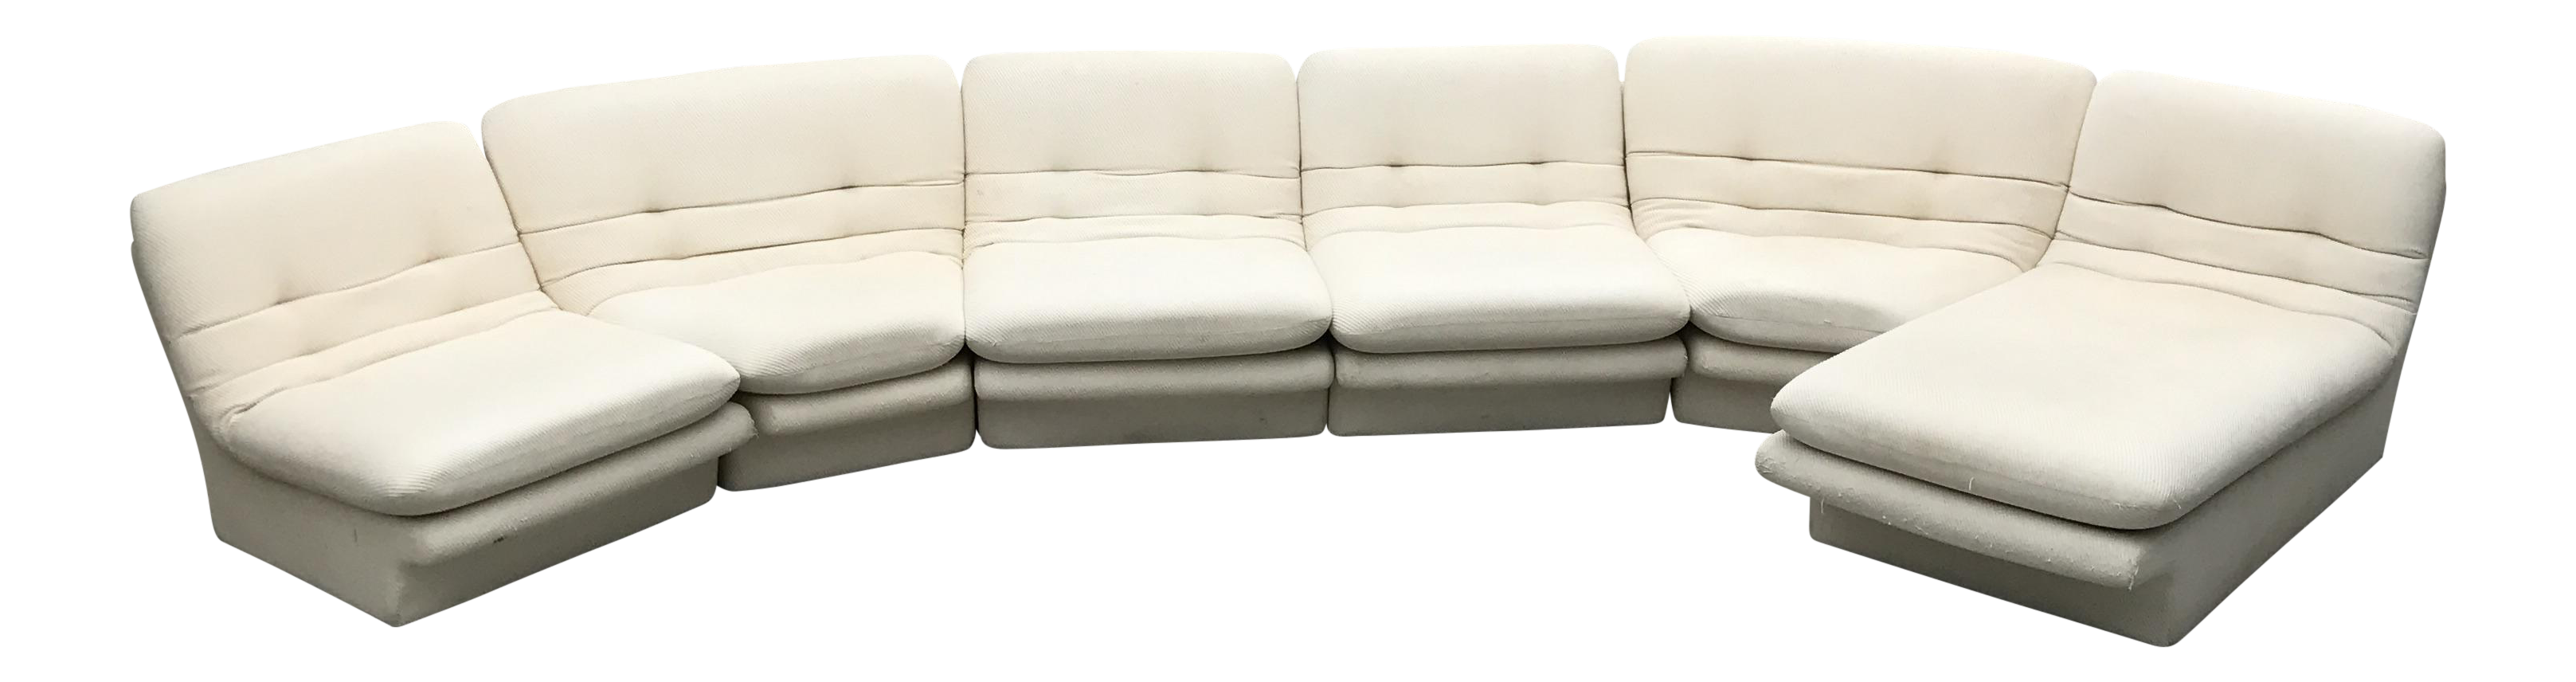 1970s Vintage Vladimir Kagan Sectional Sofa